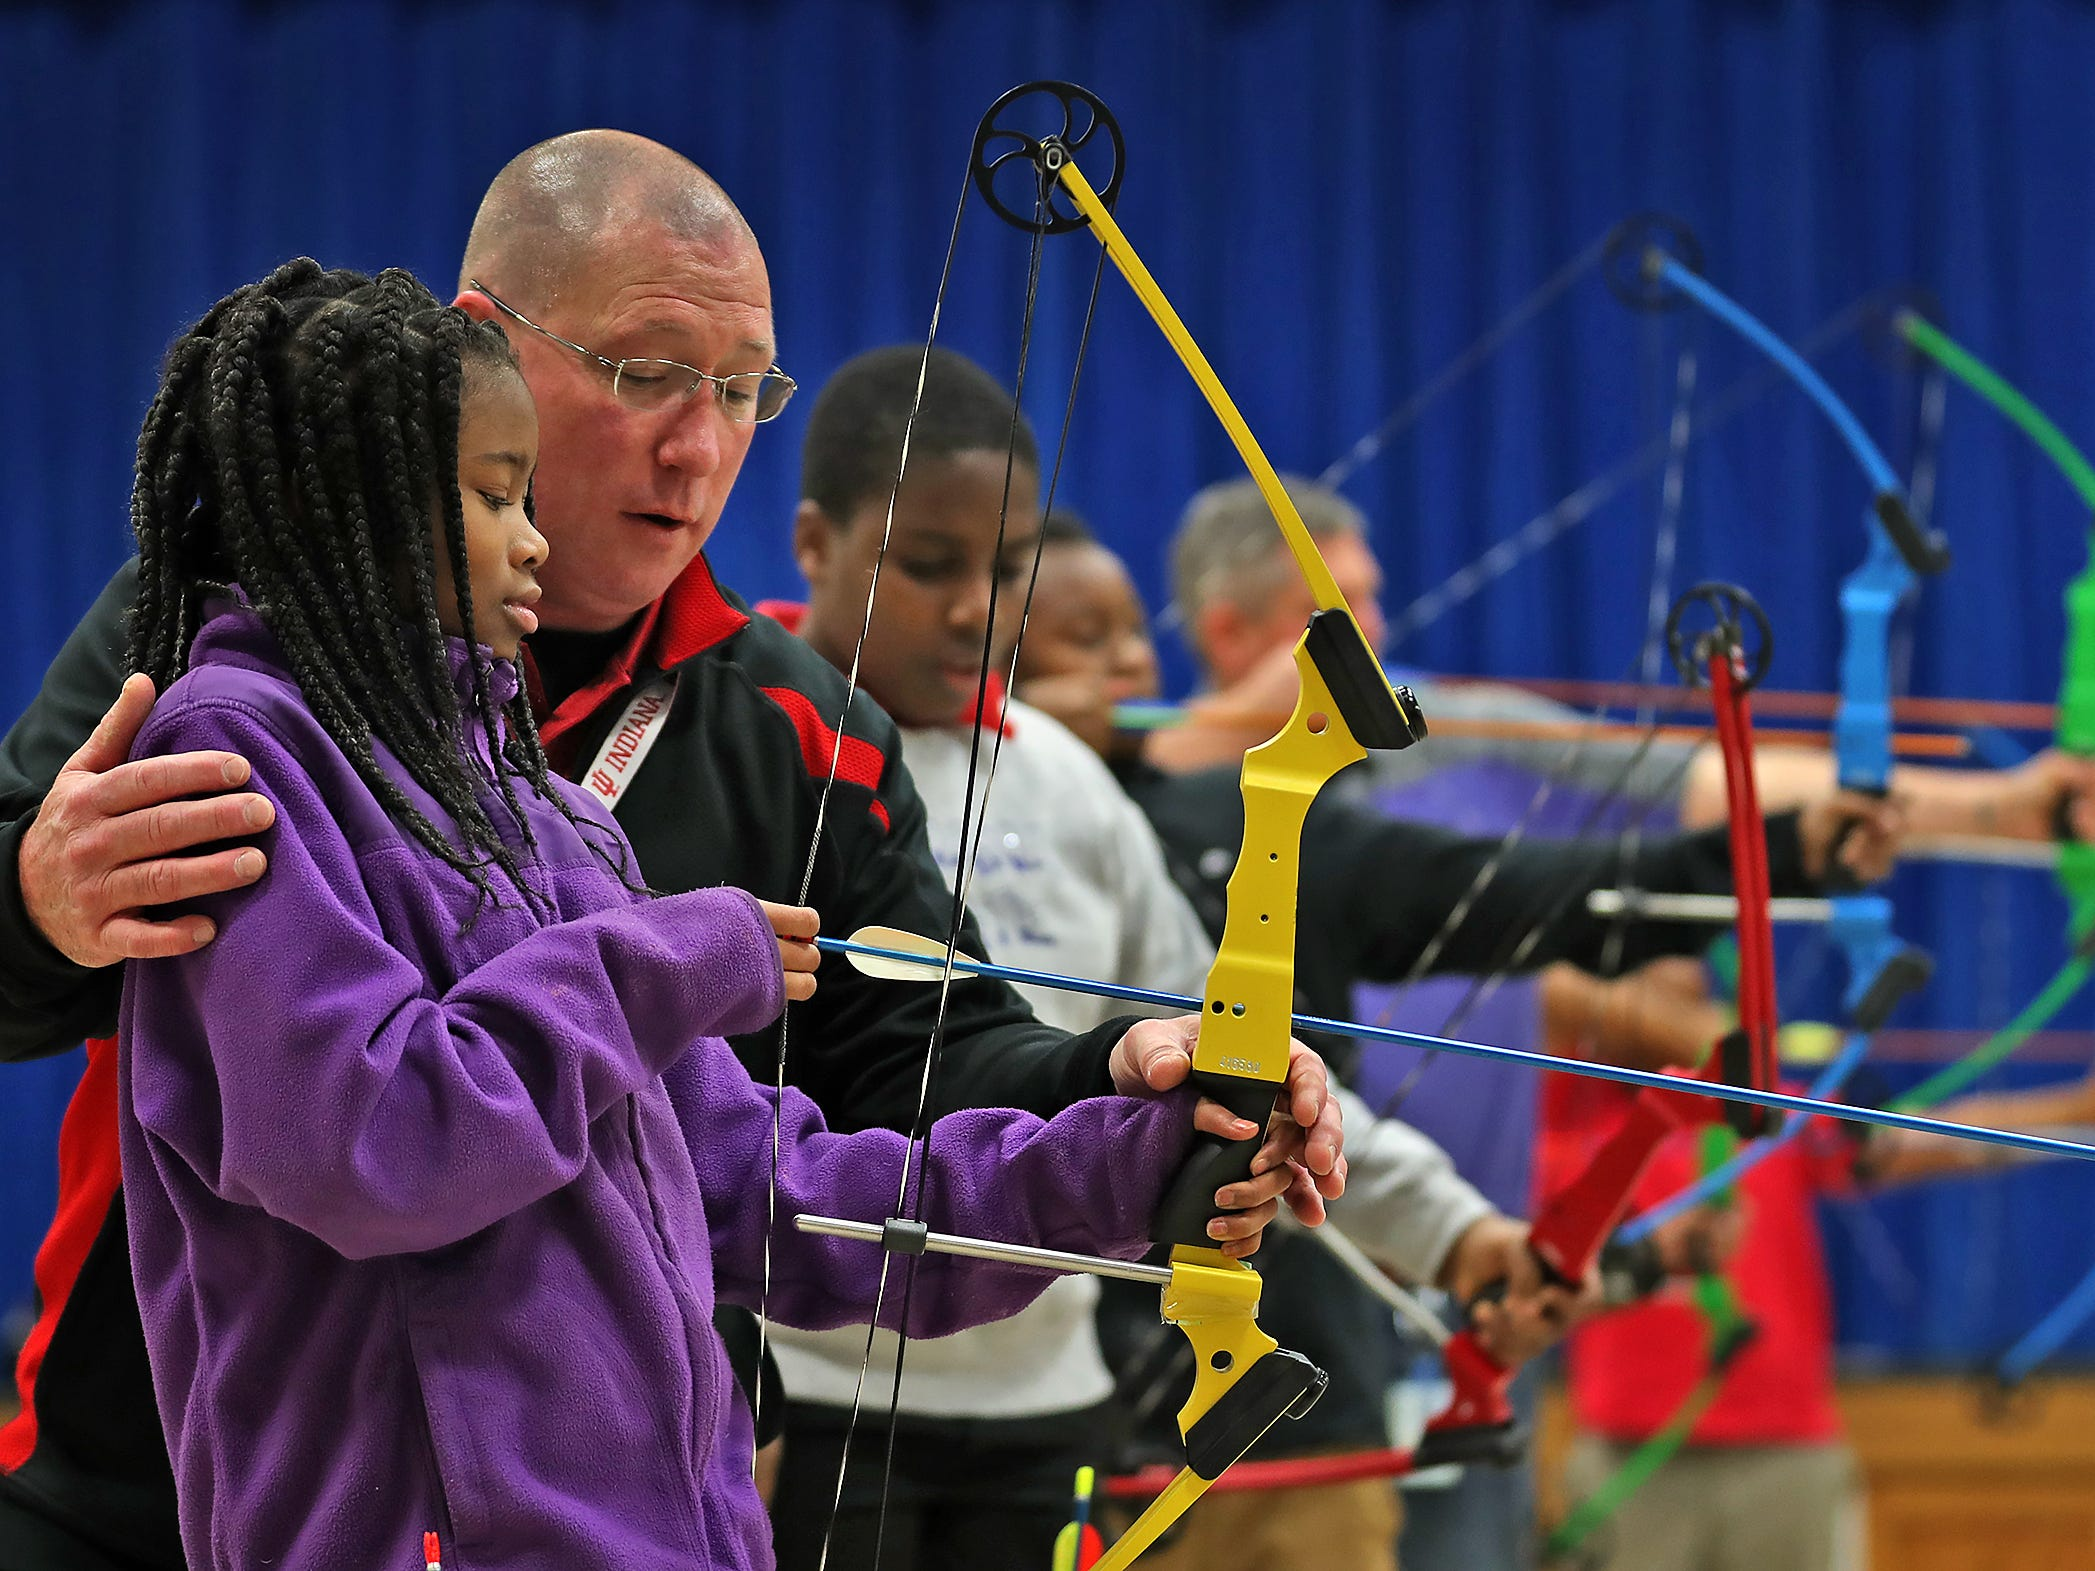 William Crawford, right, gives shooting tips to Brianna Smith during archery class at Lew Wallace Elementary IPS 107, Thursday, Dec. 20, 2018.